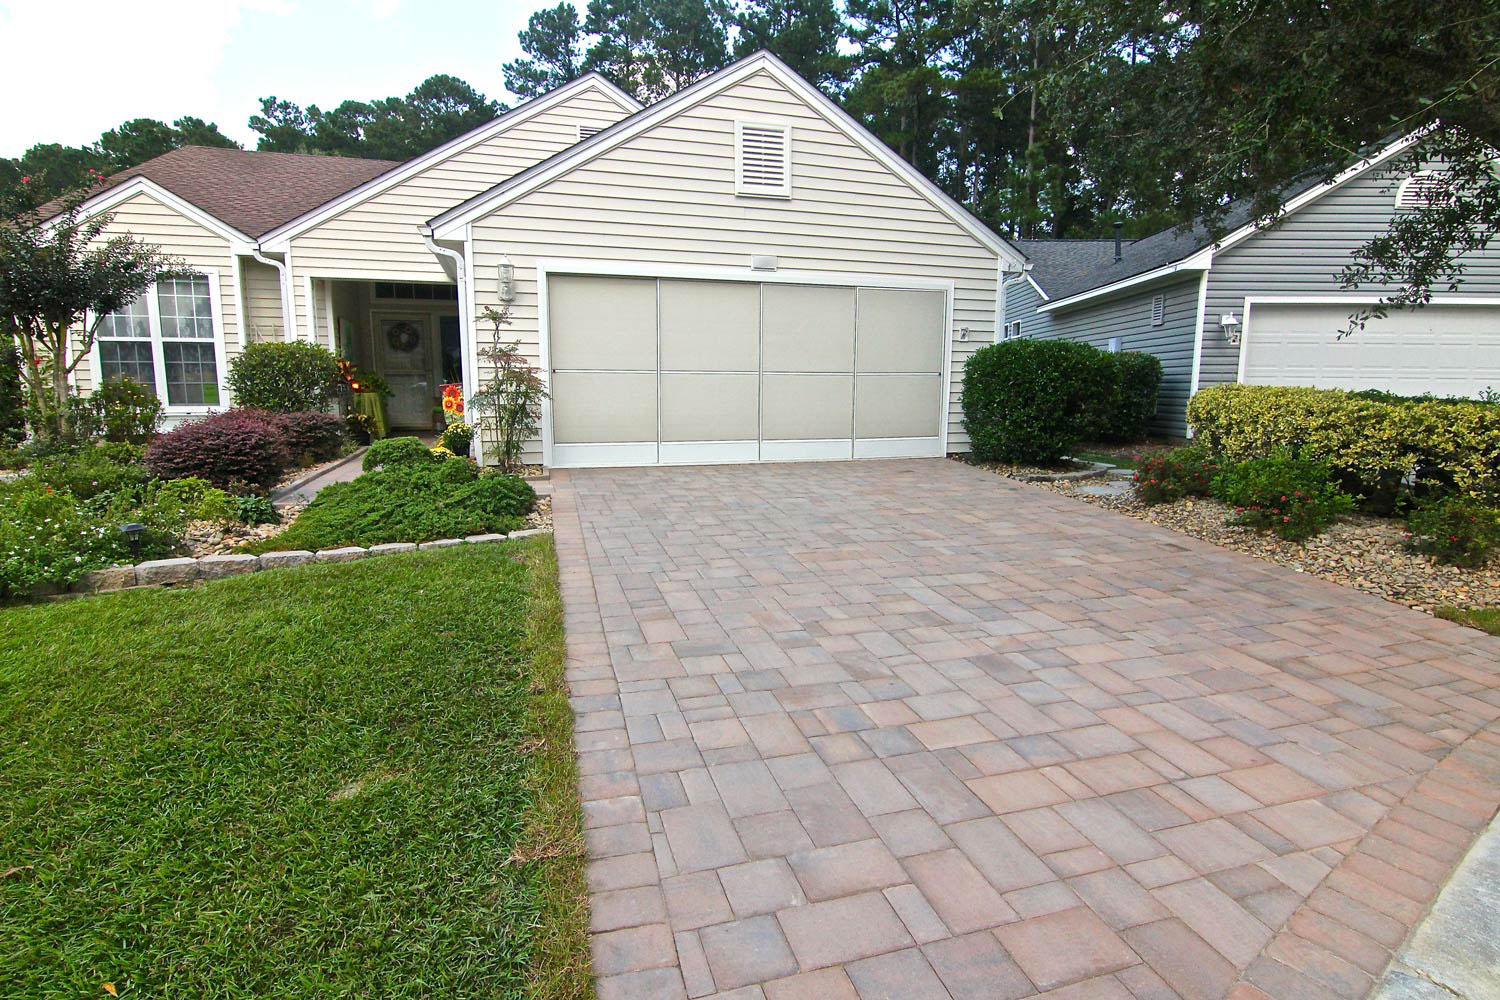 How Much Does It Cost To Install A Brick Paver Driveway